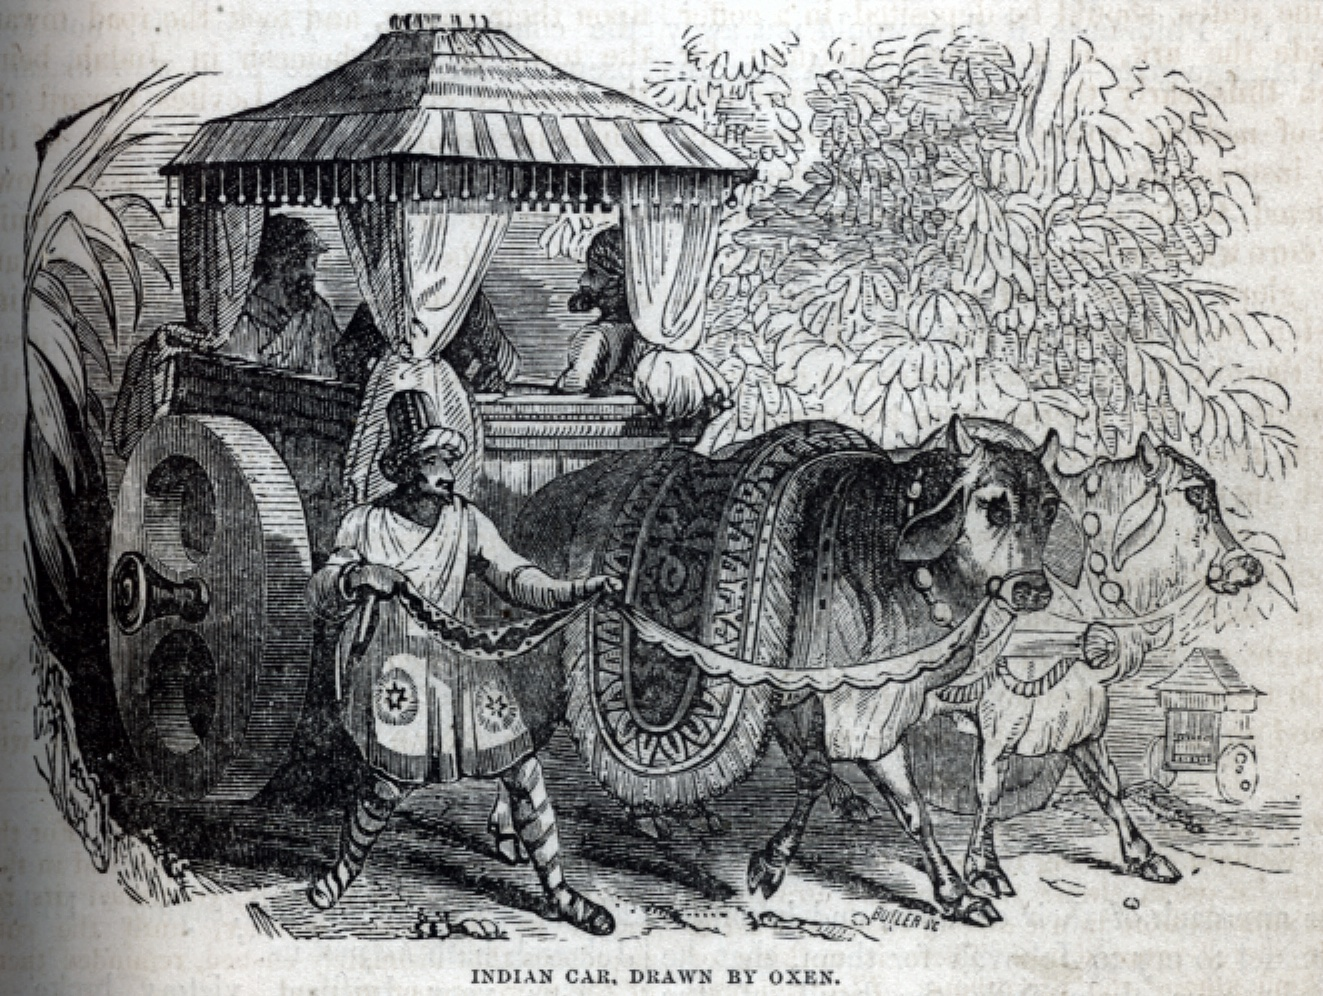 Indian Car, drawn by Oxen